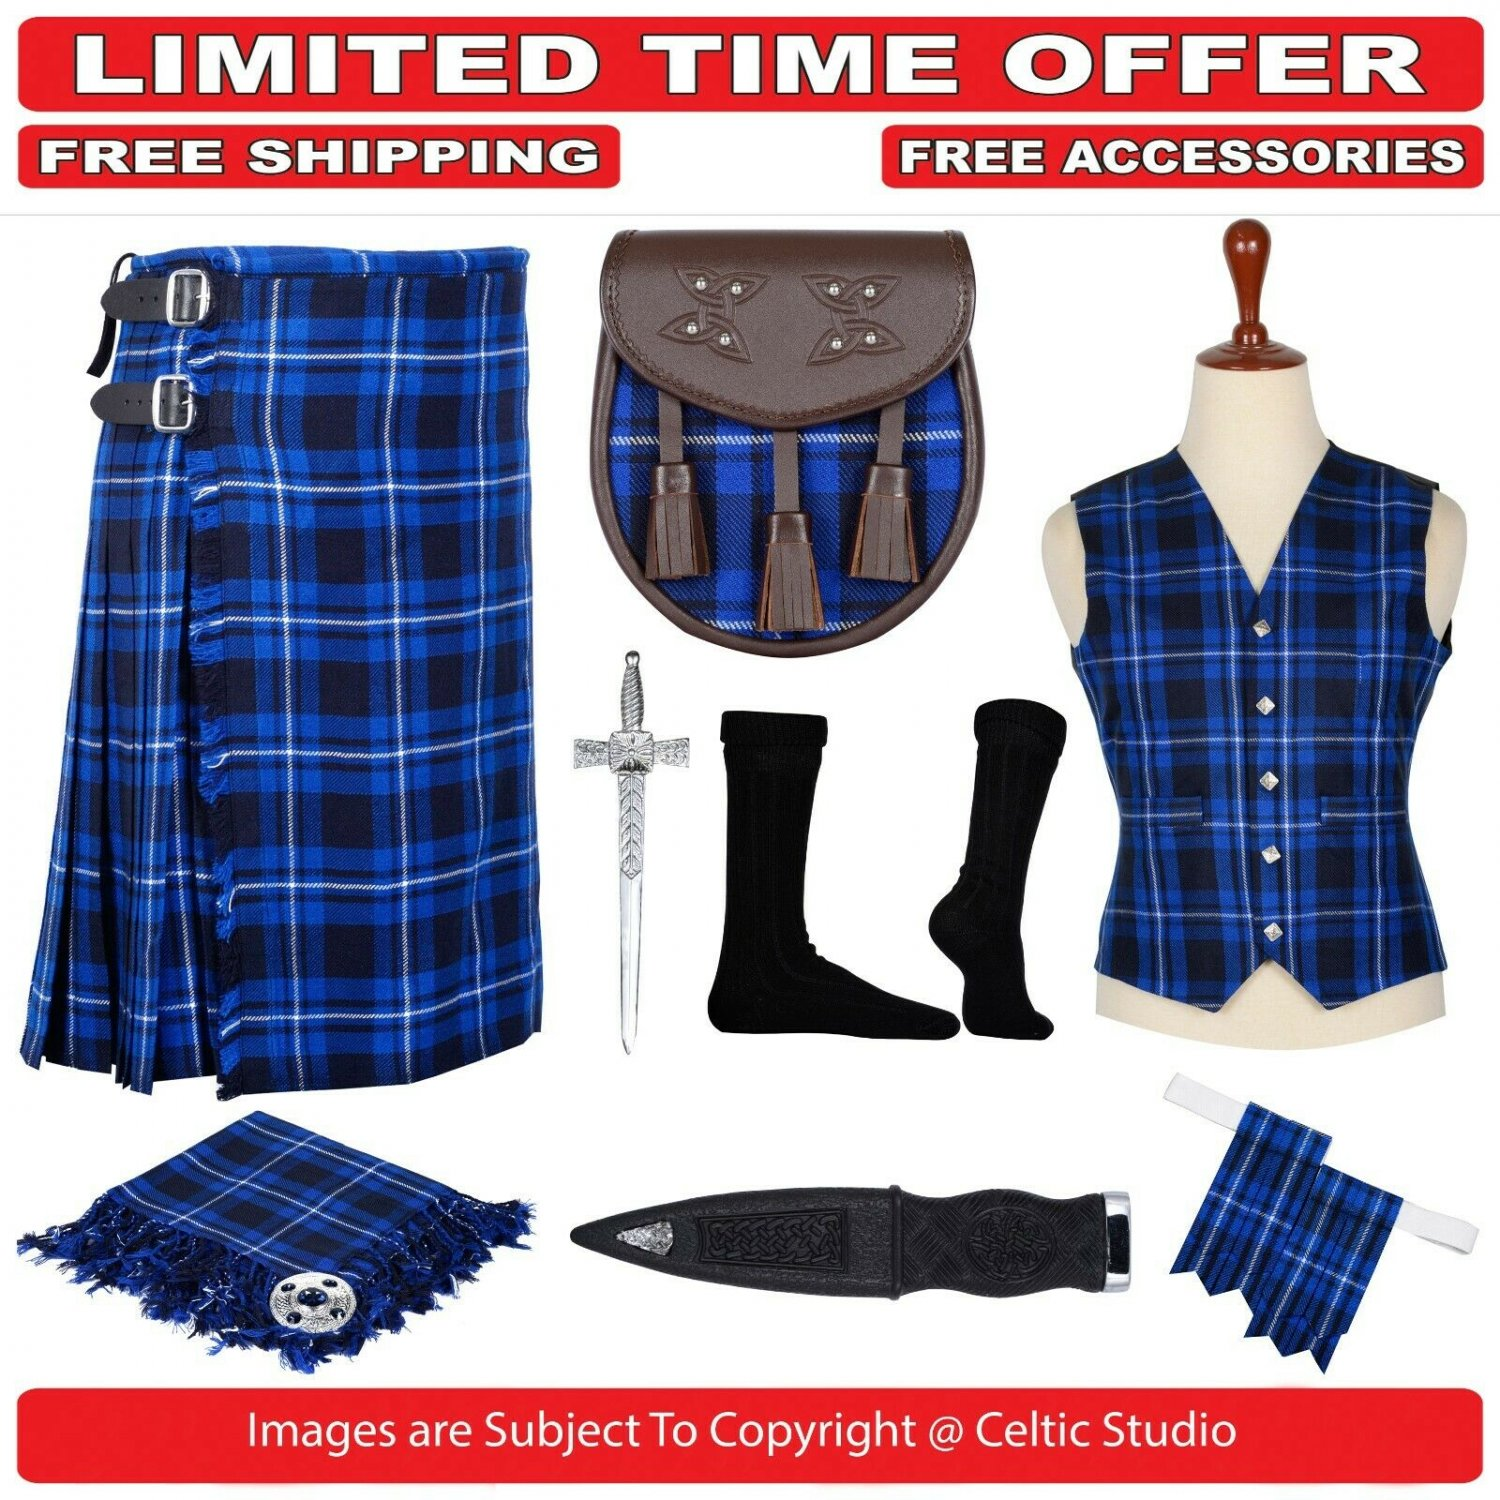 34 size Ramsey Blue Scottish Traditional Tartan Kilt With Free Shipping and 9 Accessories